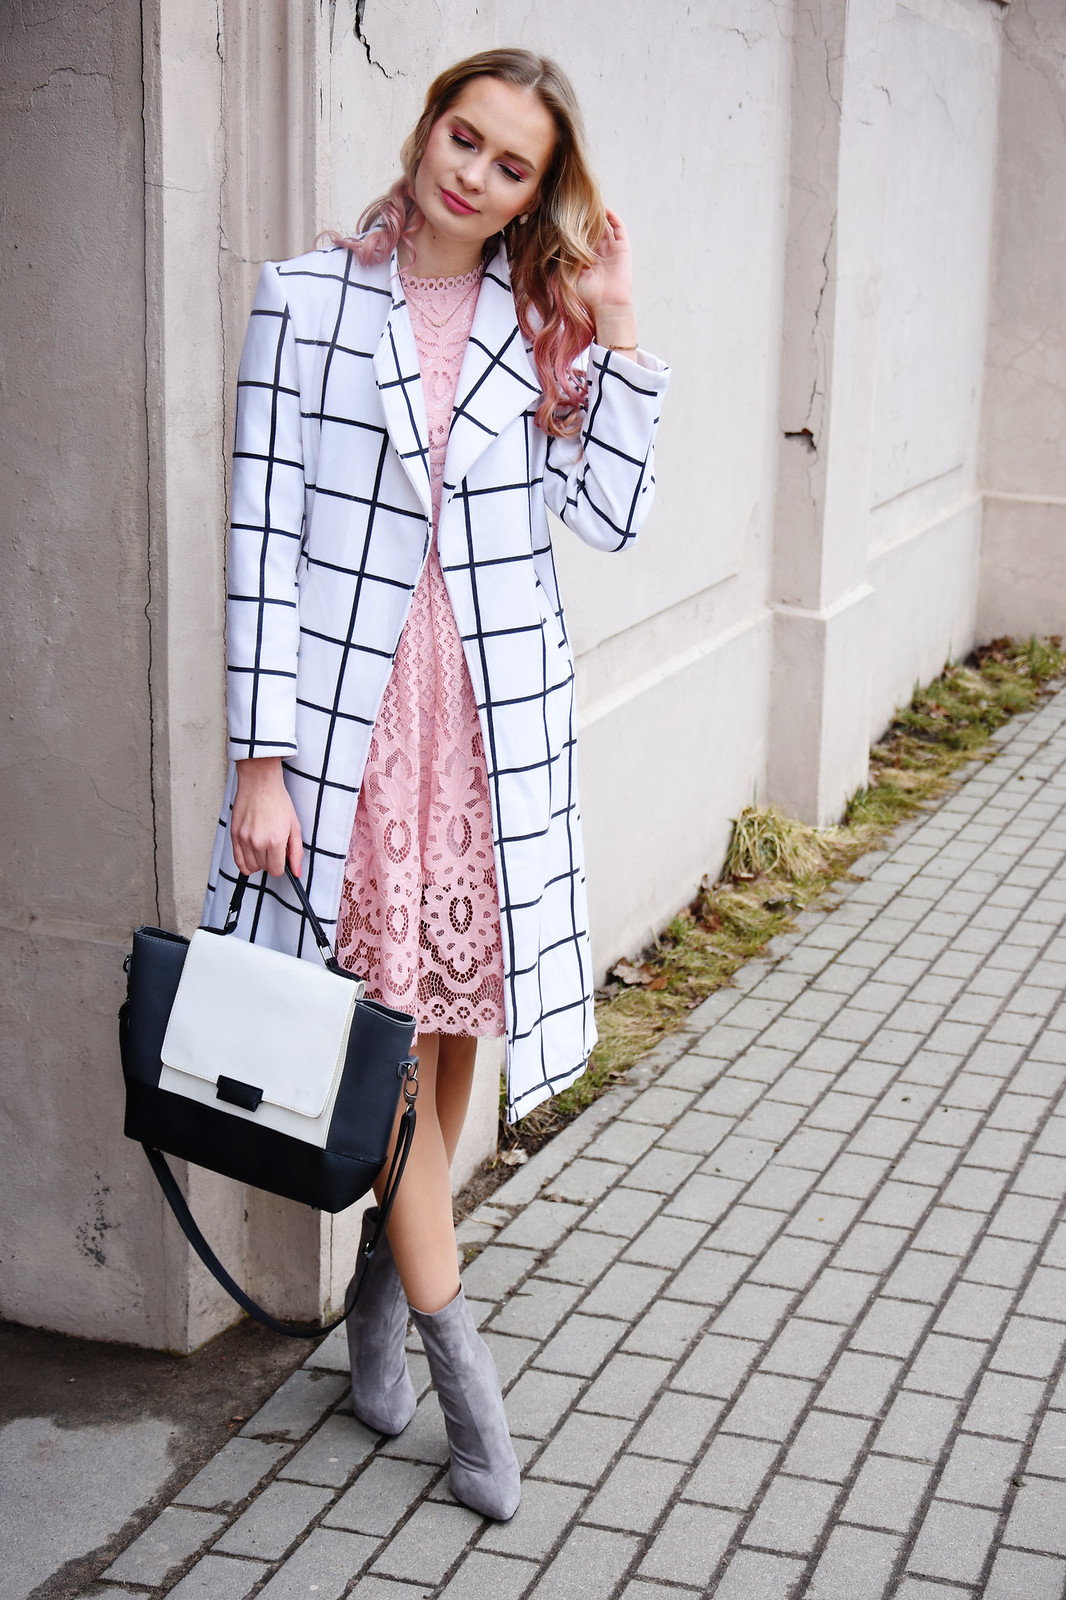 Romantic and chic spring outfit